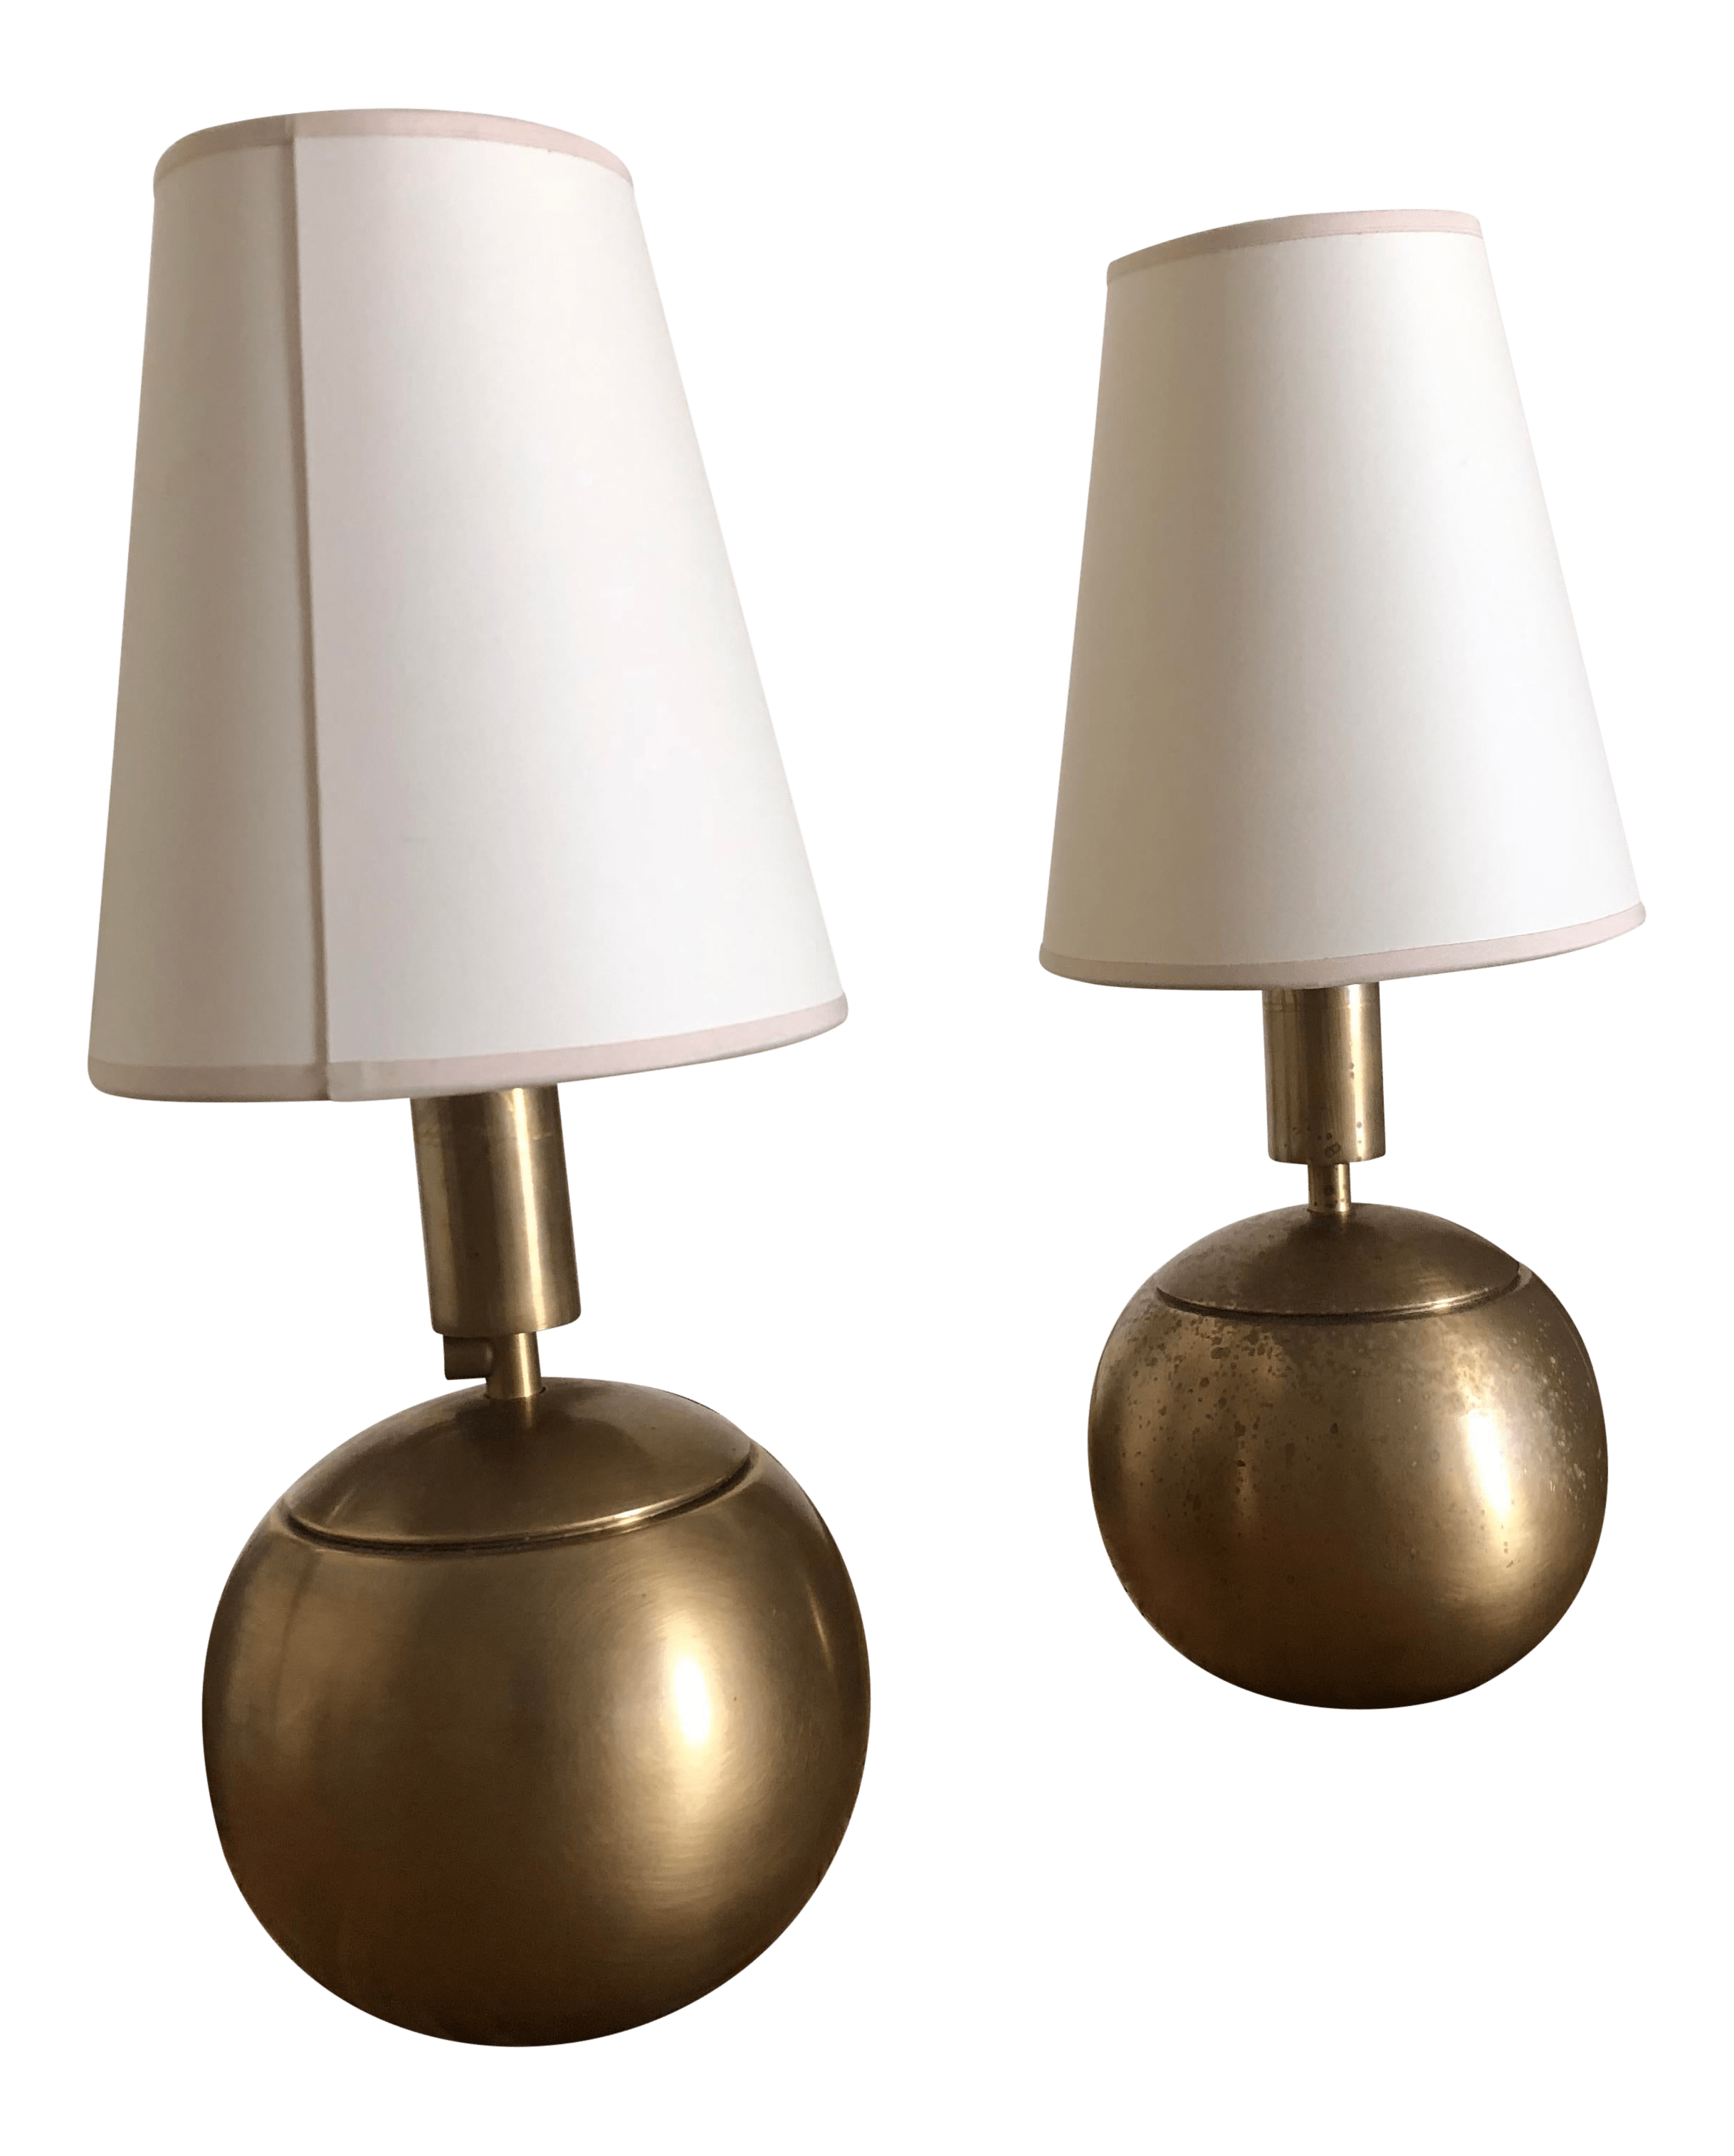 thomas o brien for circa lighting tiny terri round accent lamps in antique brass a pair